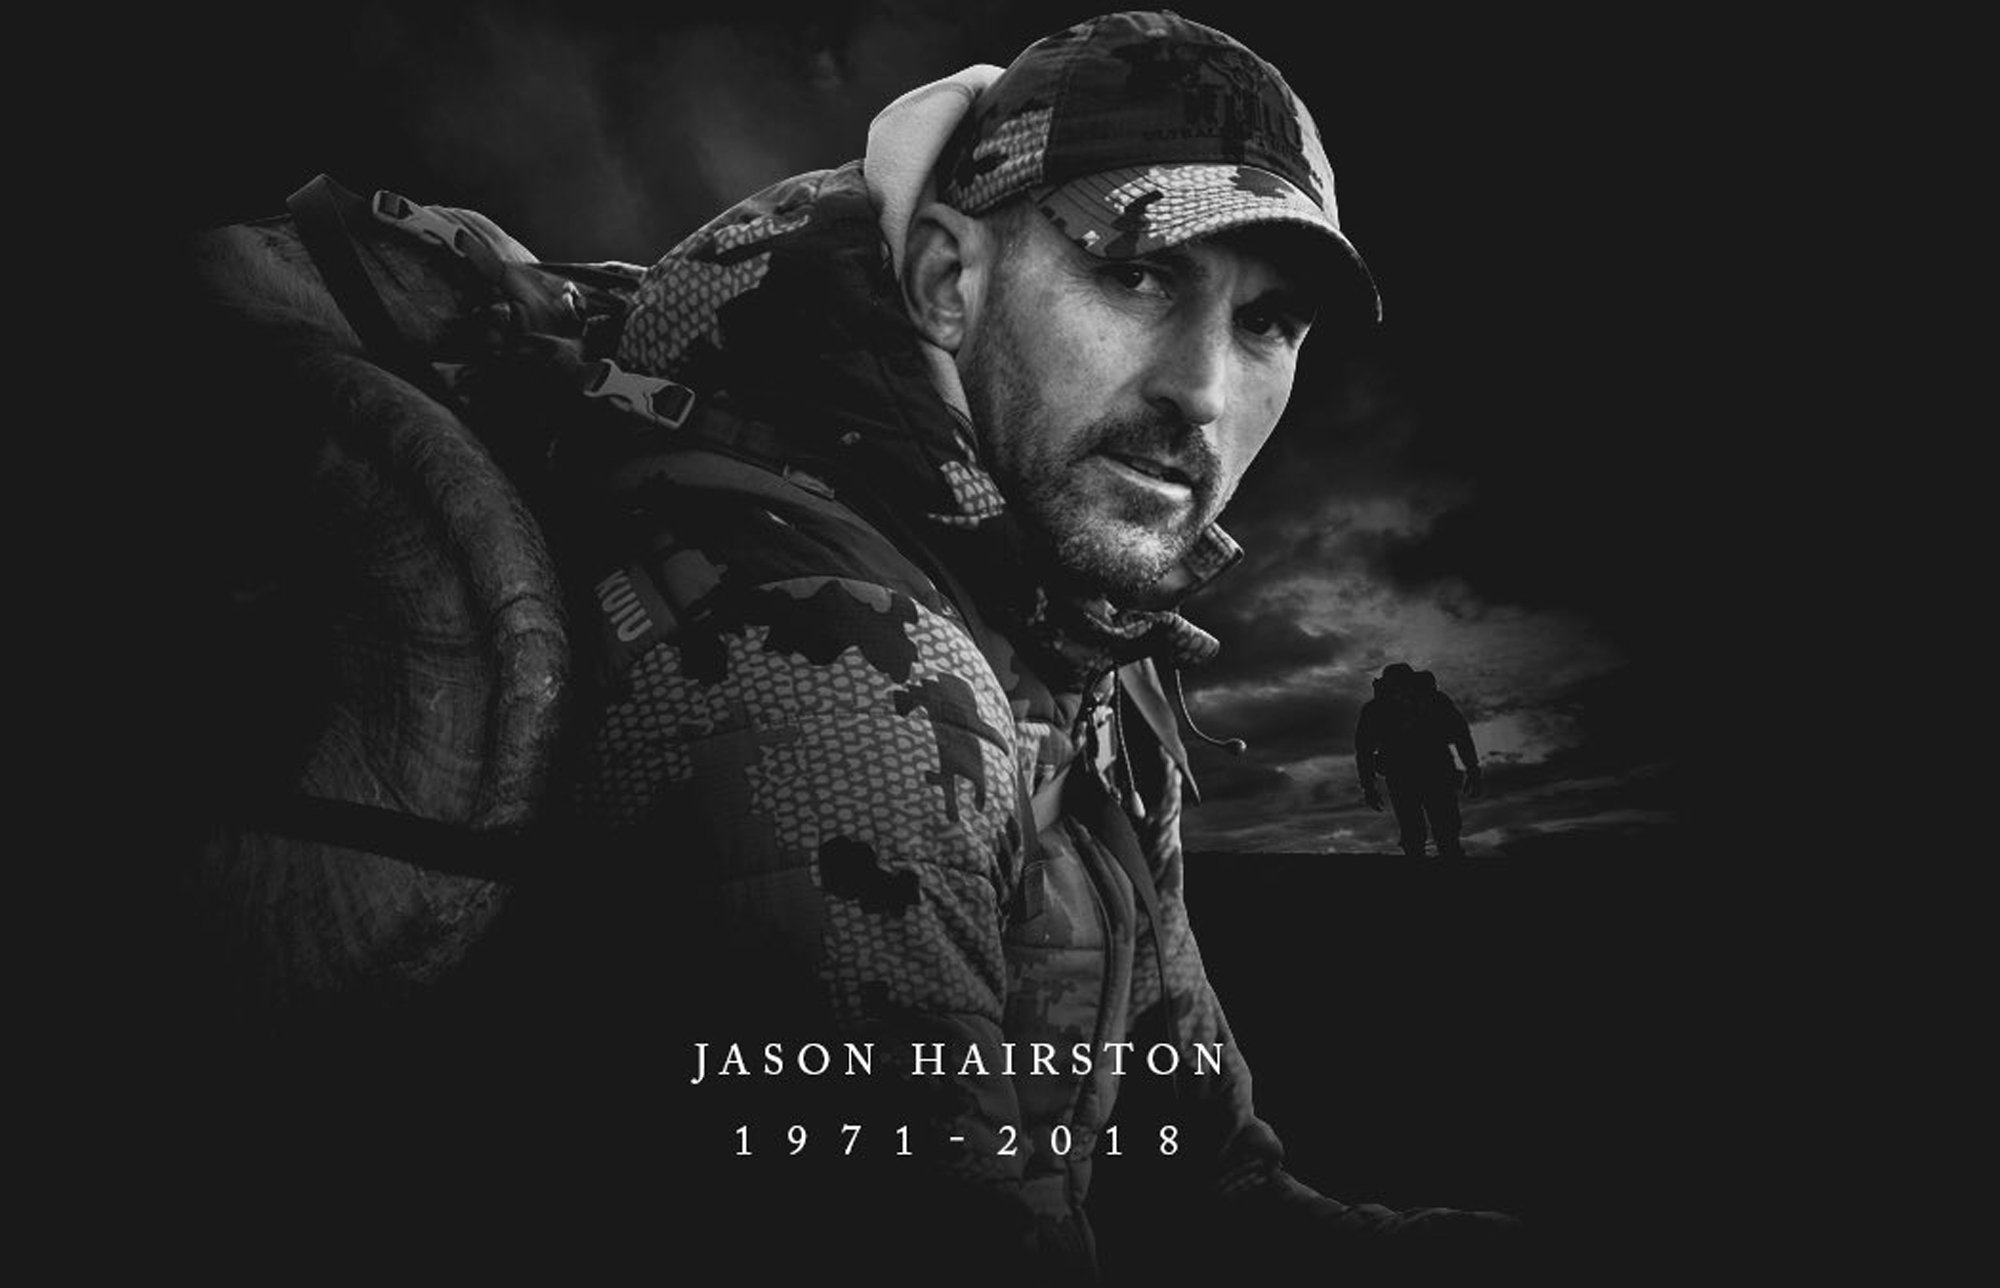 Former San Francisco 49ers Player Jason Hairston Dead by Suicide at Age 47